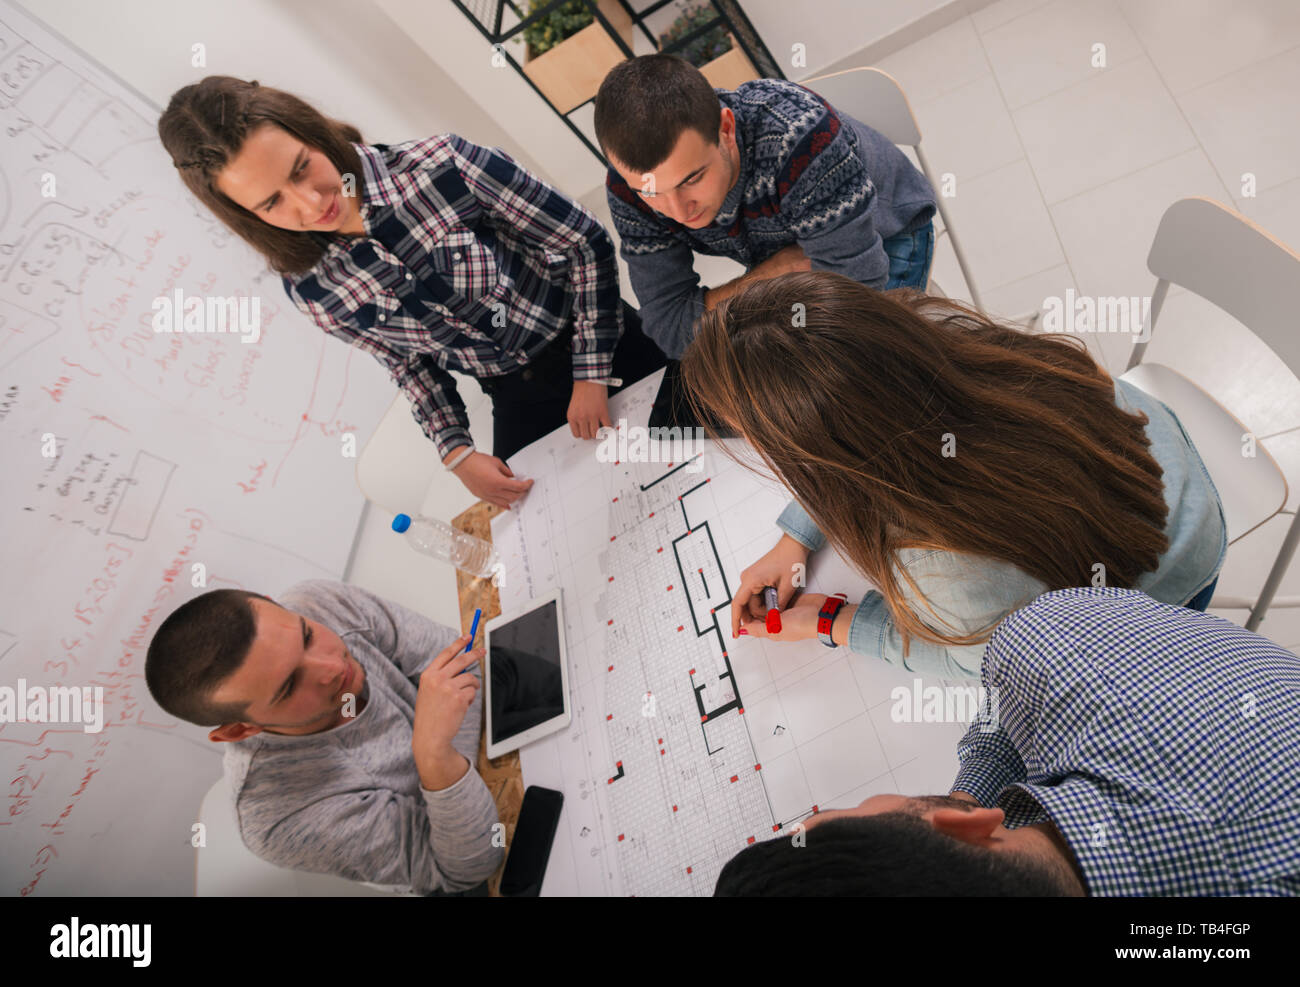 A debate about the gains and losses of the current plan between the bussines group. - Stock Image